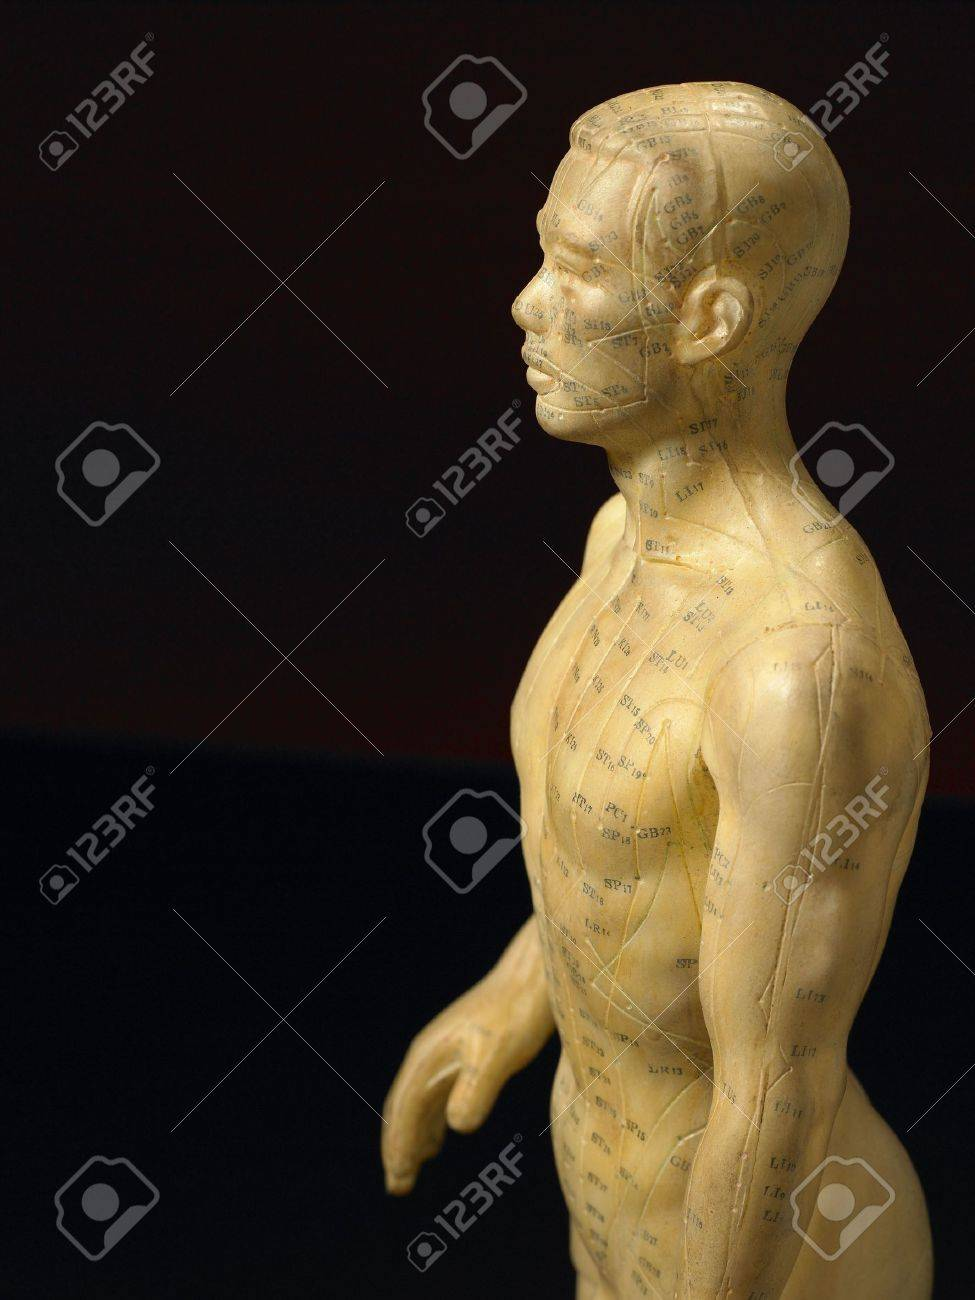 Meridian Lines On An Acupuncture Figurine Stock Photo - 4638875